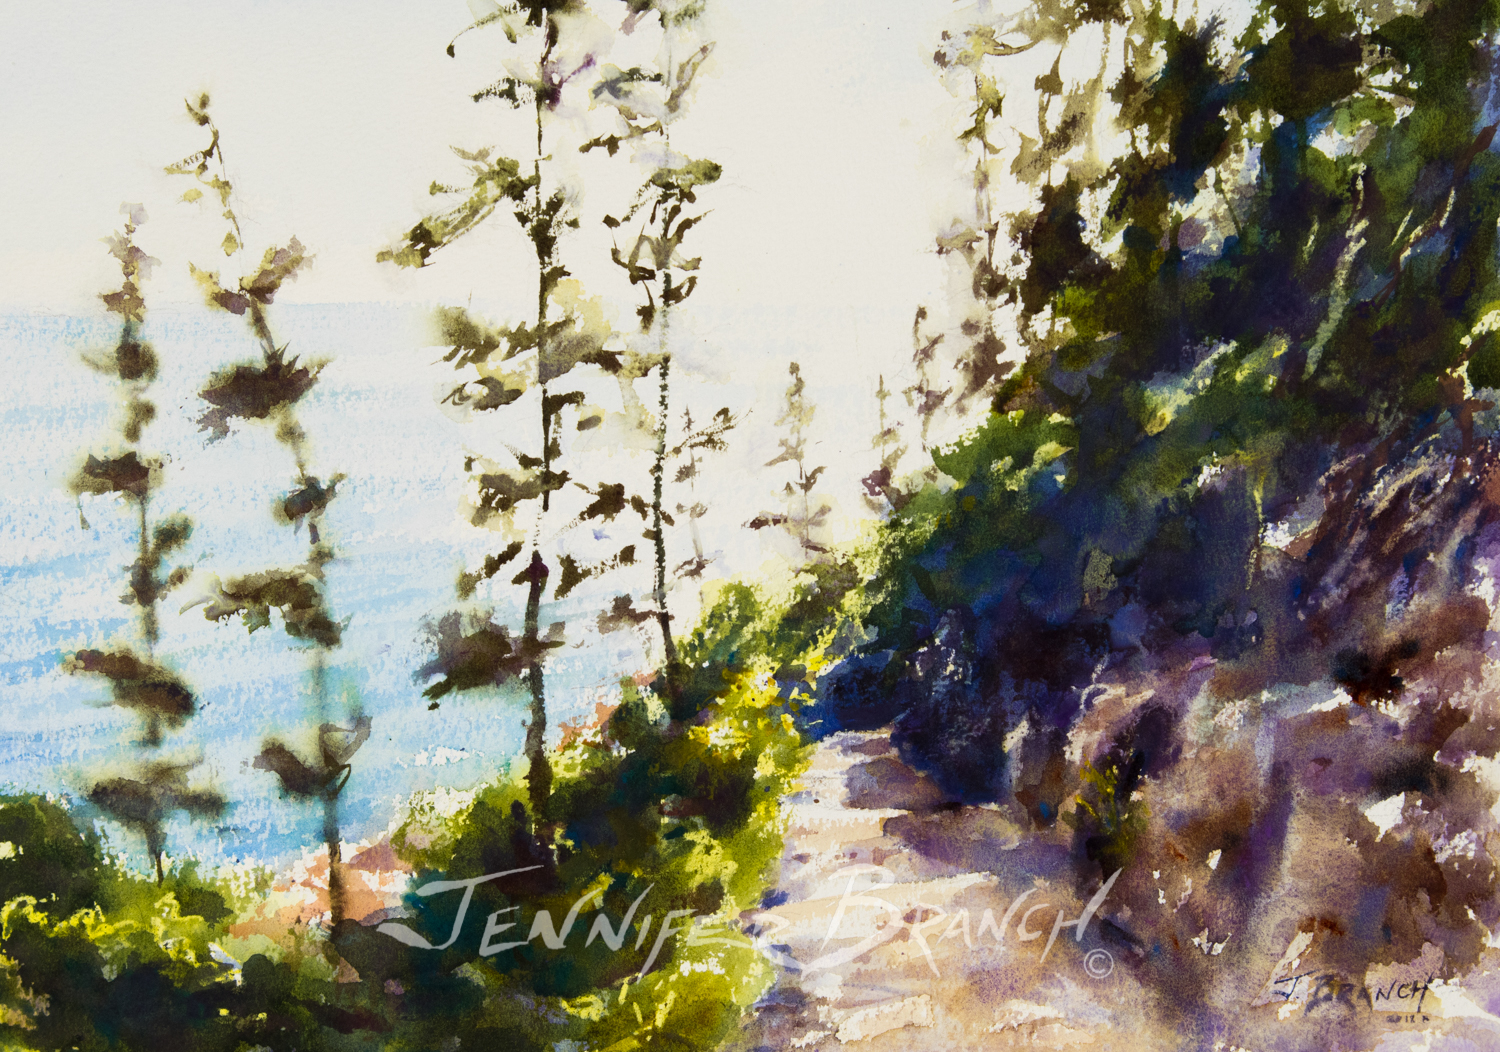 The sun is shining and a beautiful view is at the end of the path. Watercolor painting of the path to Bass Harbor Lighthouse by Jennifer Branch.